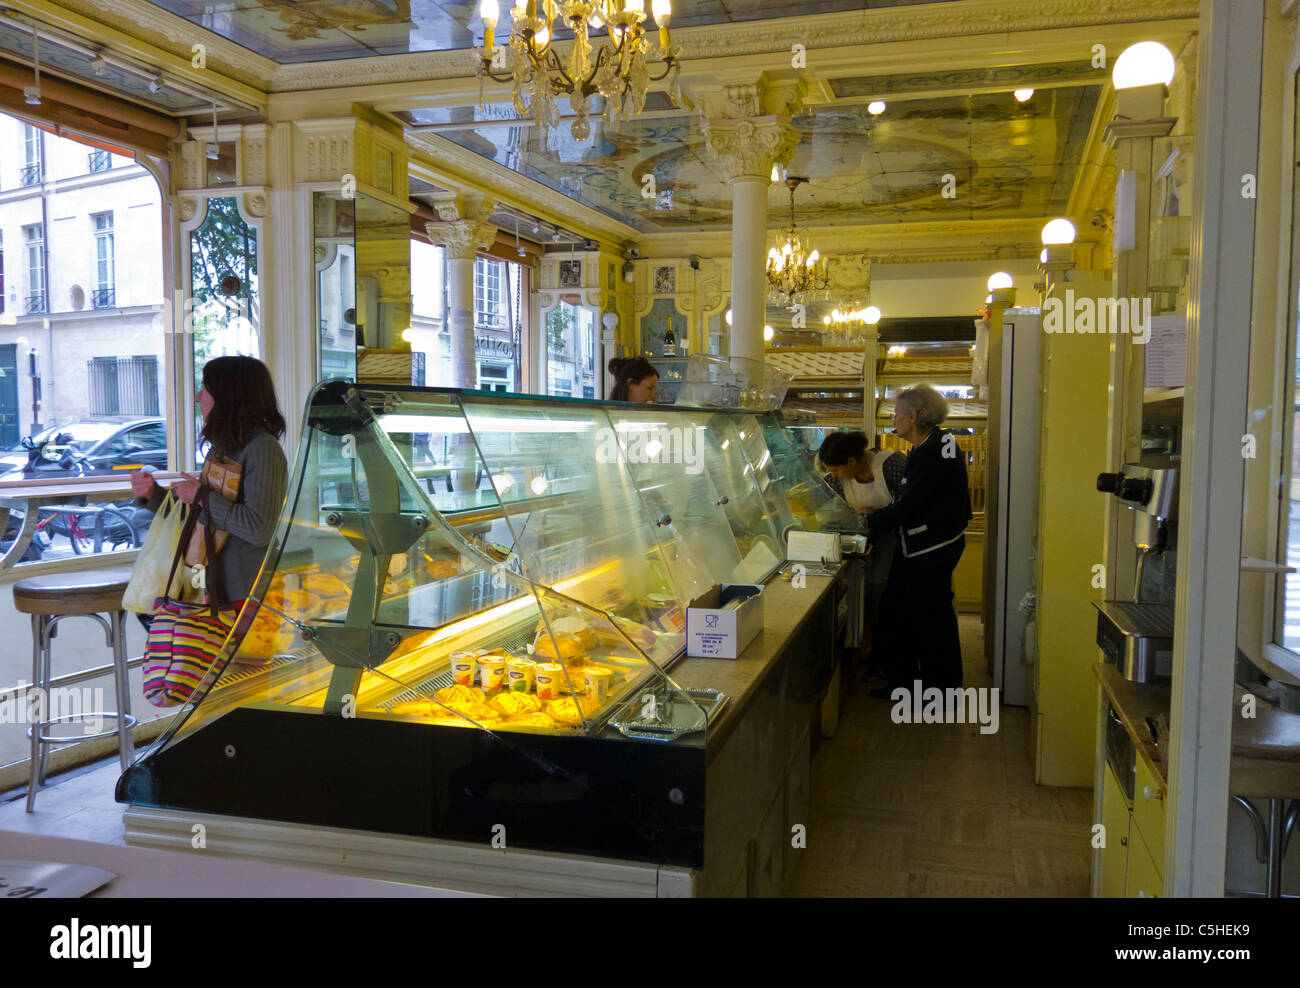 french bakery stores stock photos french bakery stores stock images alamy. Black Bedroom Furniture Sets. Home Design Ideas